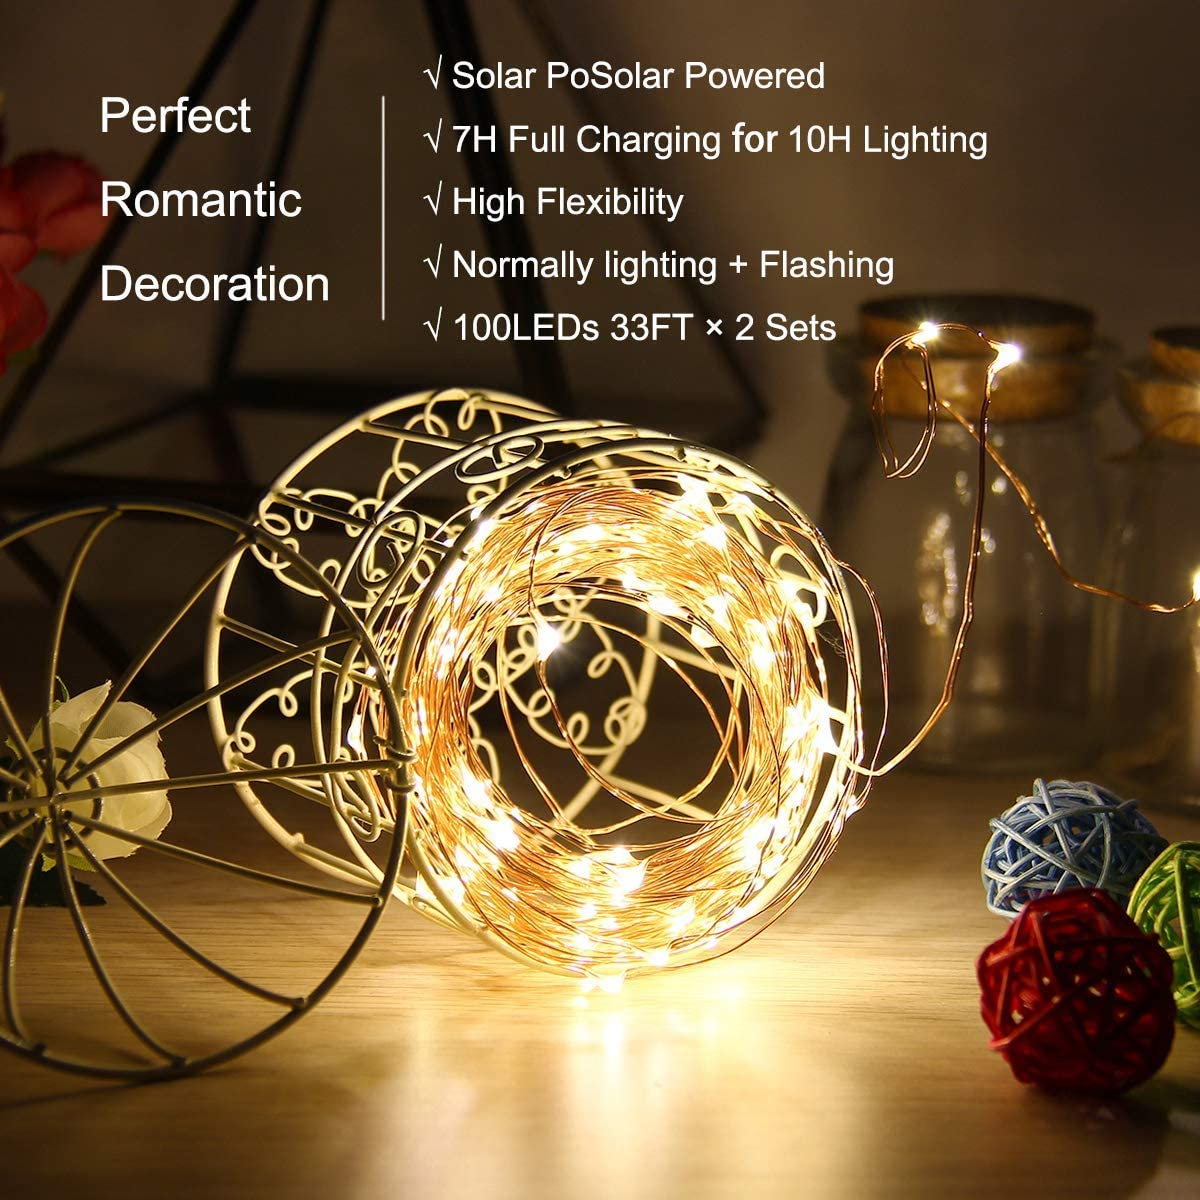 H4d0e0c6f22944401a5d6f264638fe3b5o - Led Outdoor Solar String Lights Fairy Holiday Christmas For Christmas, Lawn, Garden, Wedding, Party and Holiday(1/2Pack)